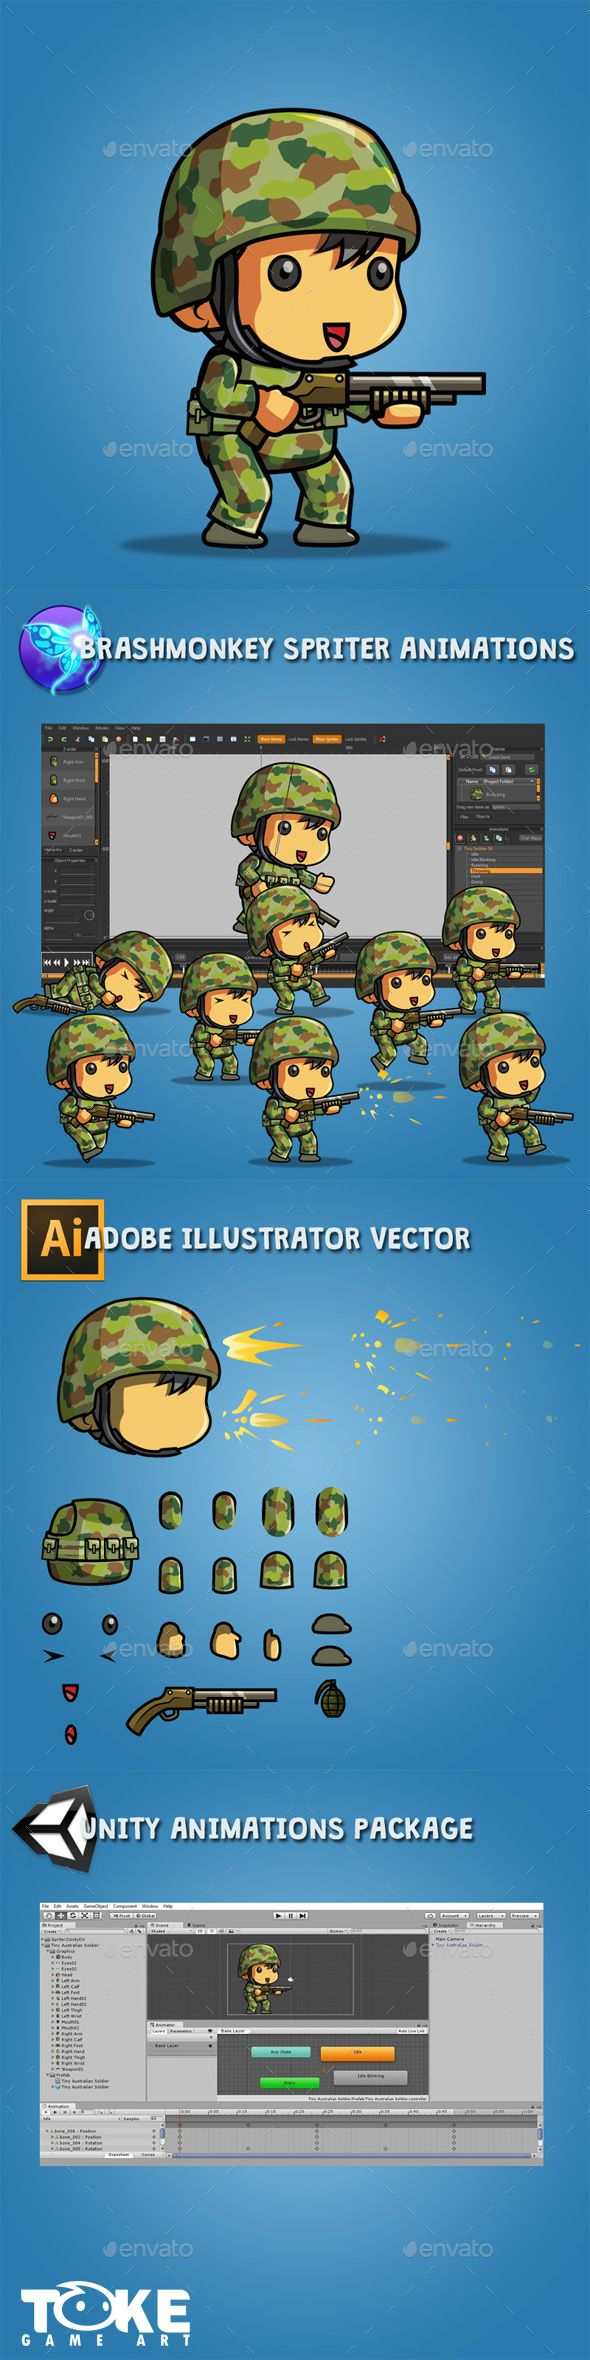 Pin by thatheysheoq on Graphicriver Vector Cool